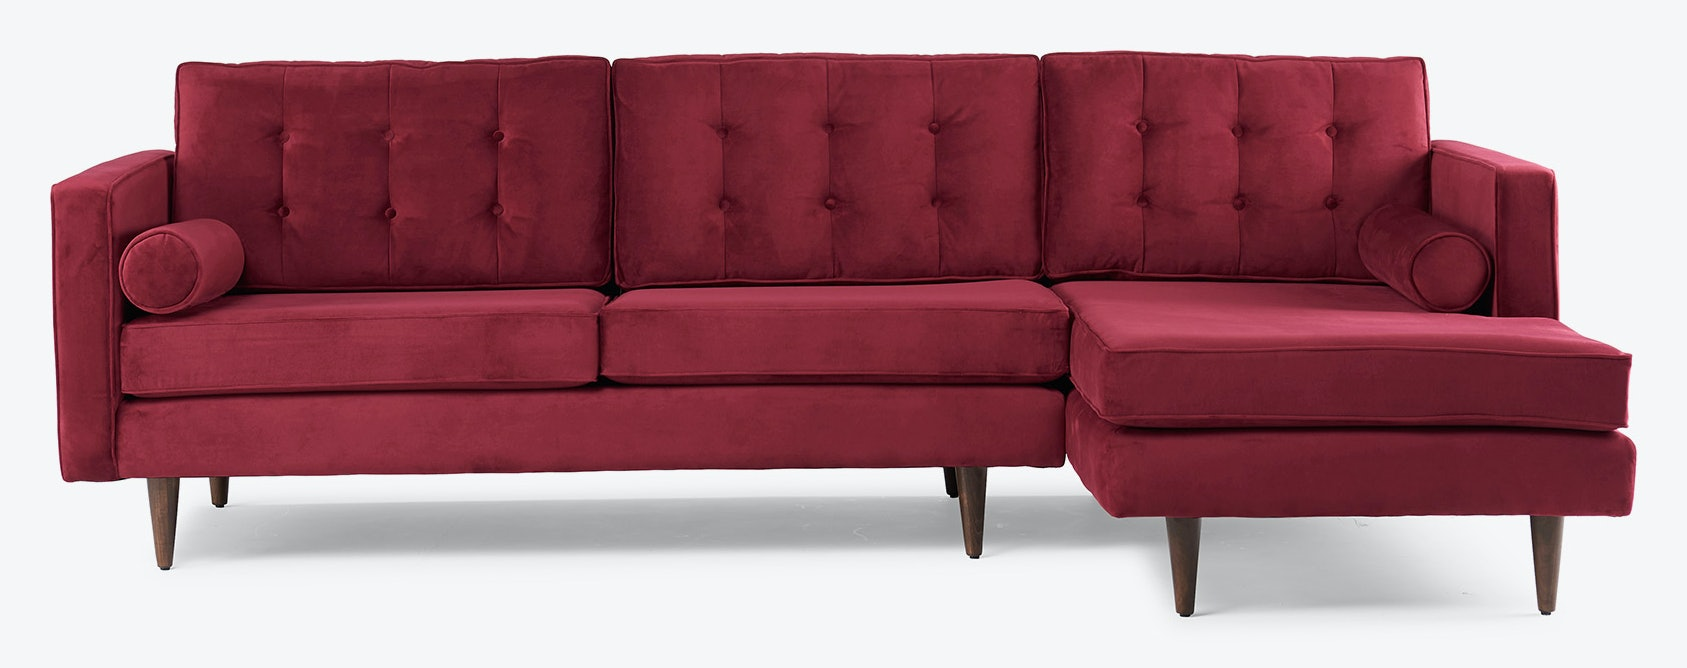 Braxton sectional bella merlot walnut lastudio webres